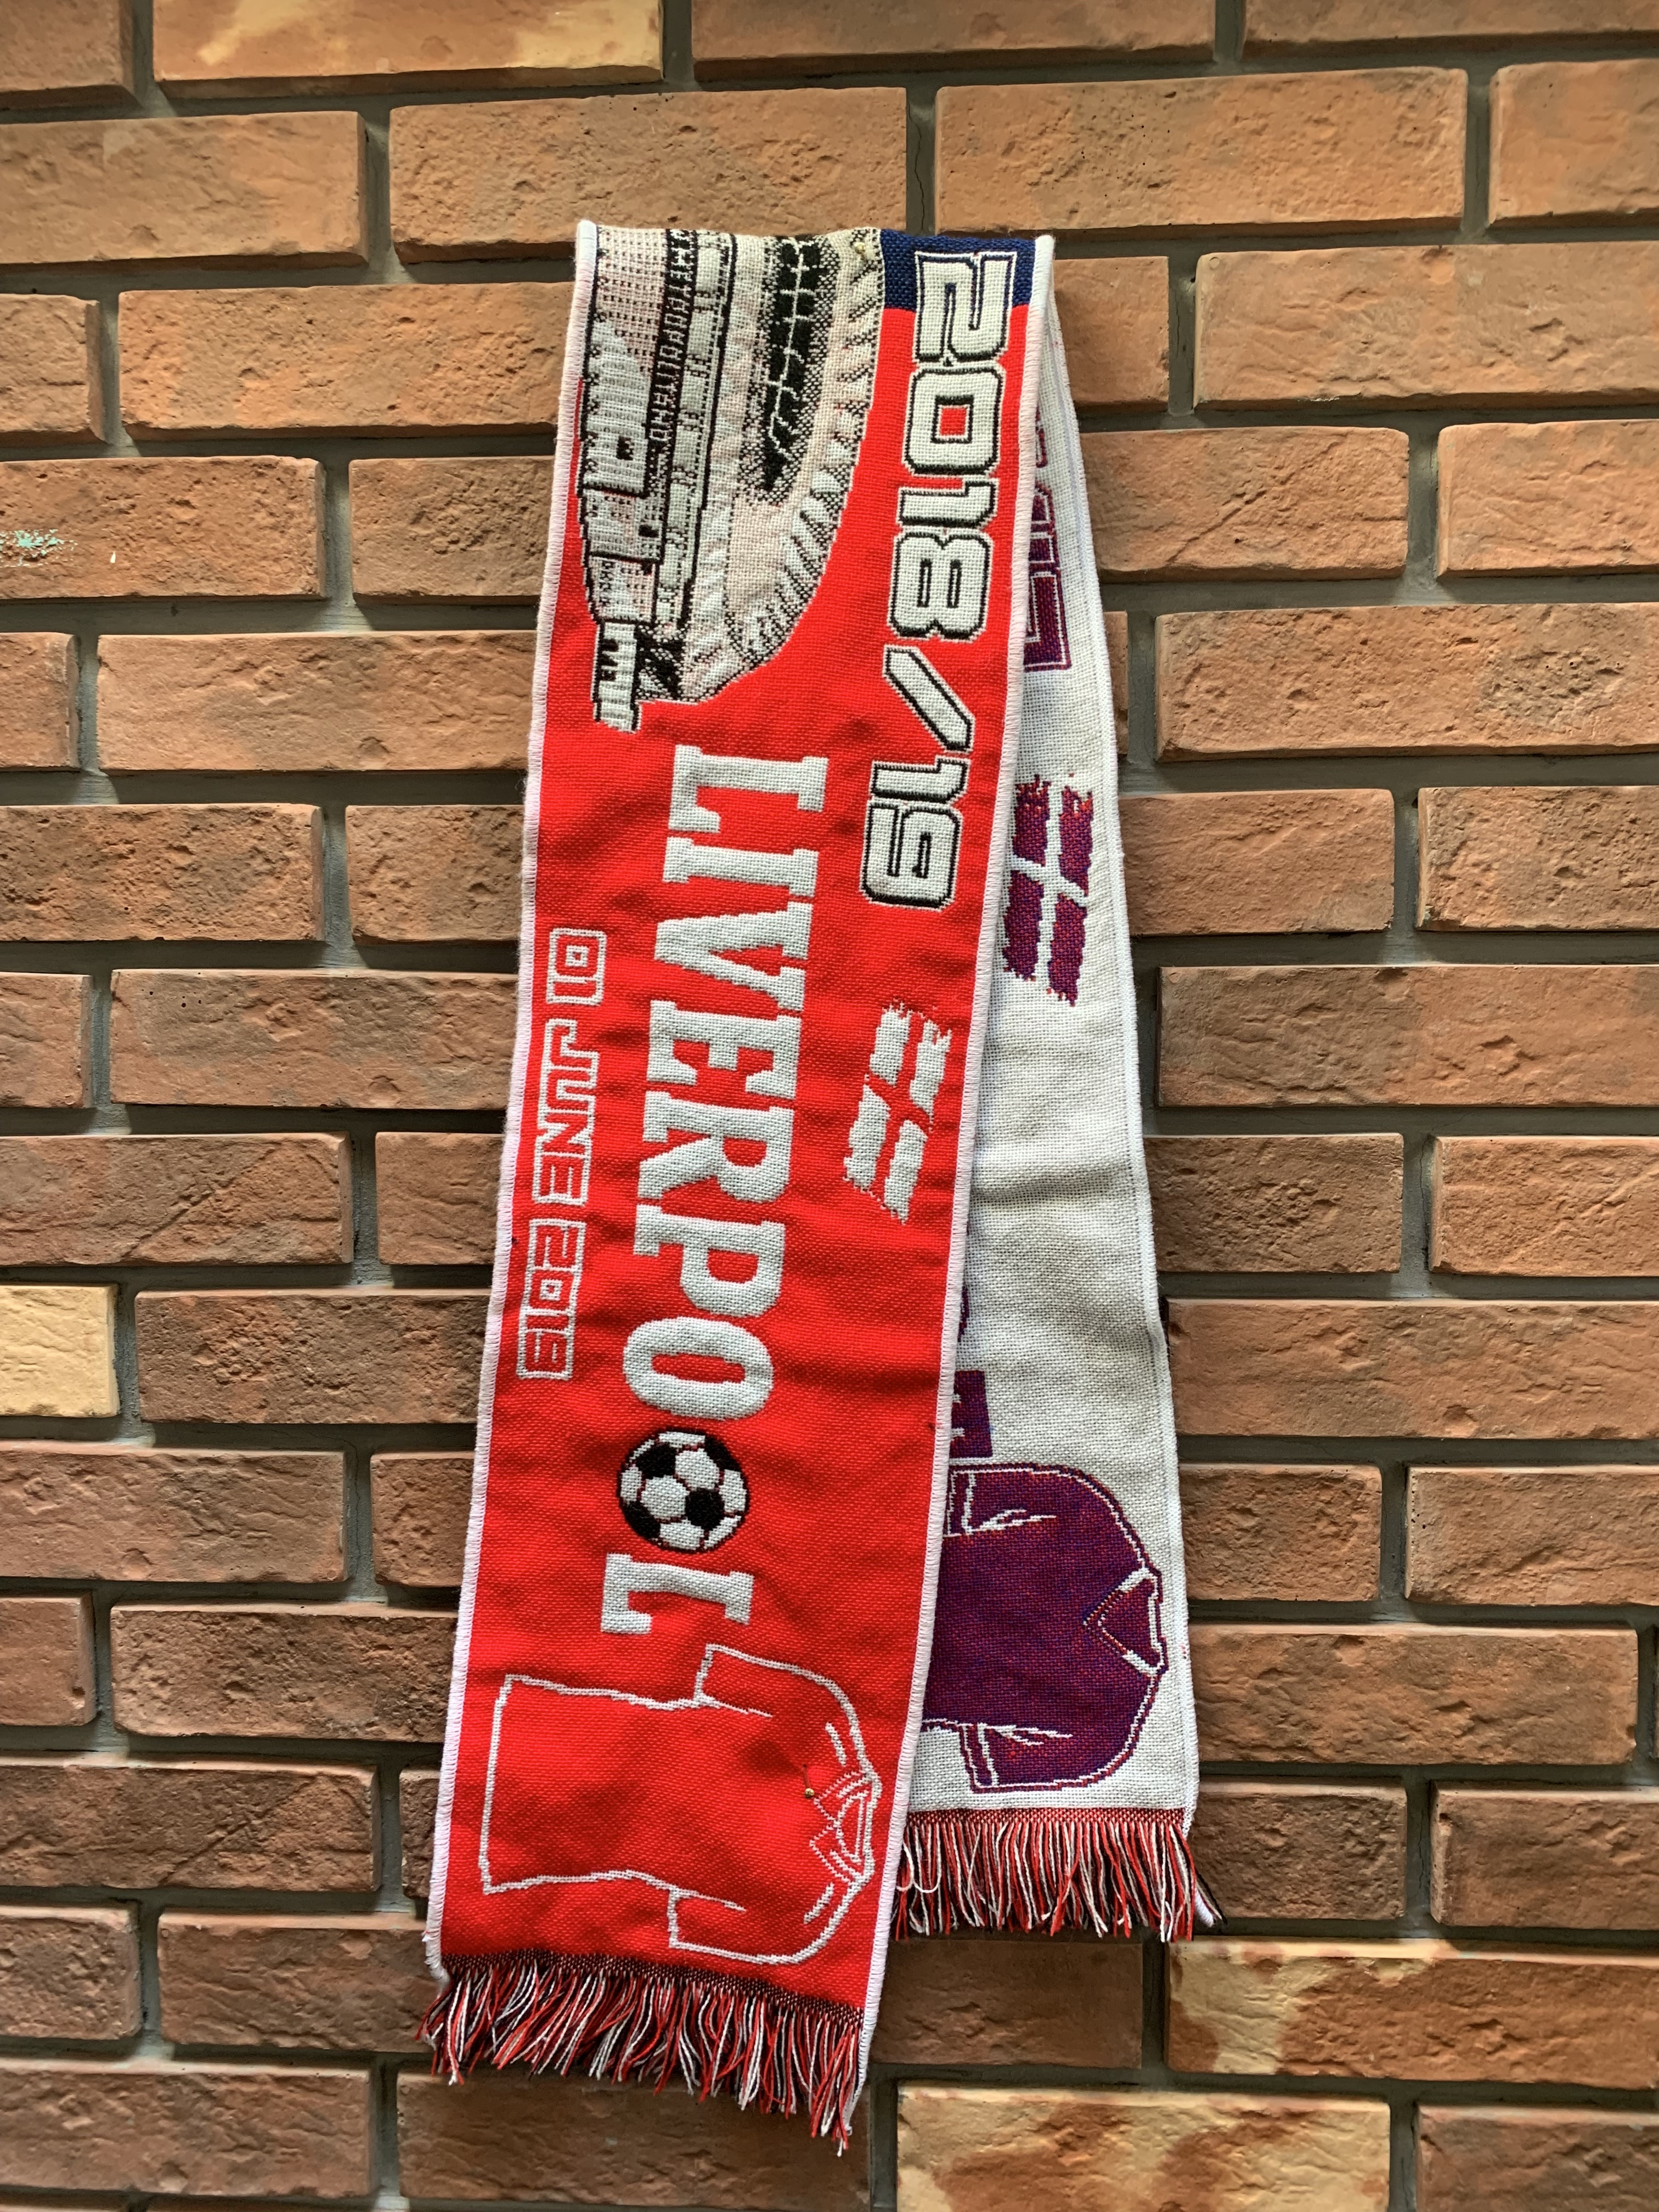 CHL 2019 Final match scarf